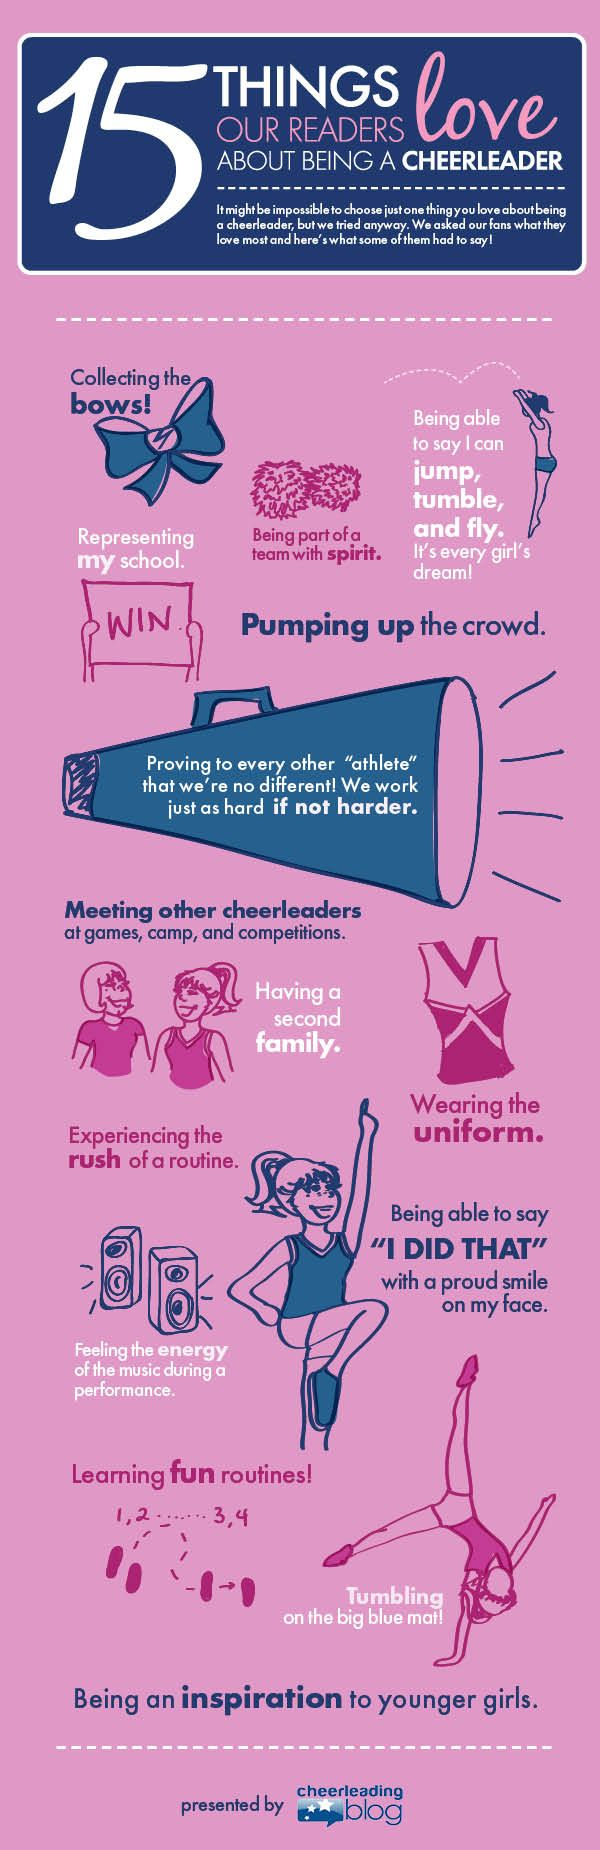 15 Things Our Readers Love About Being a Cheerleader - #Cheerleading #Infograph